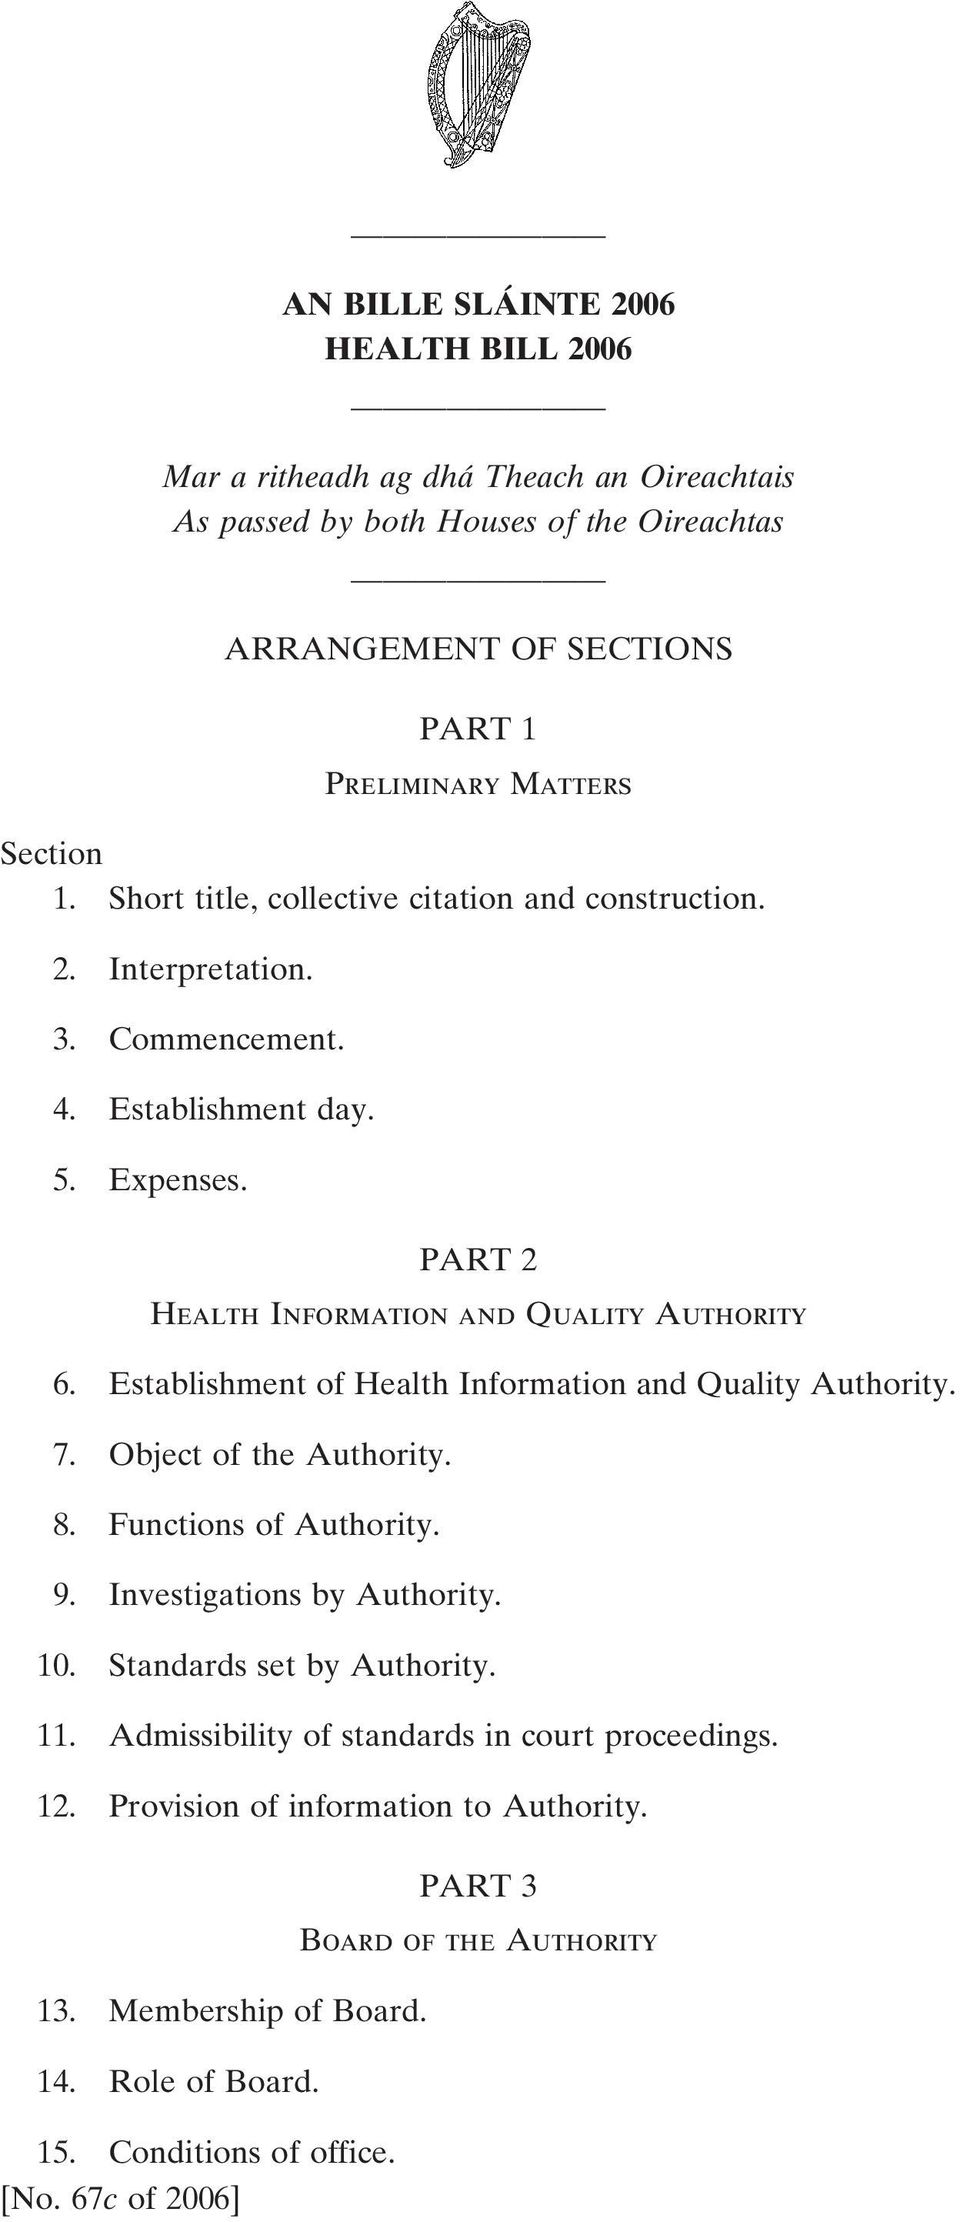 Establishment of Health Information and Quality Authority. 7. Object of the Authority. 8. Functions of Authority. 9. Investigations by Authority. 10. Standards set by Authority. 11.